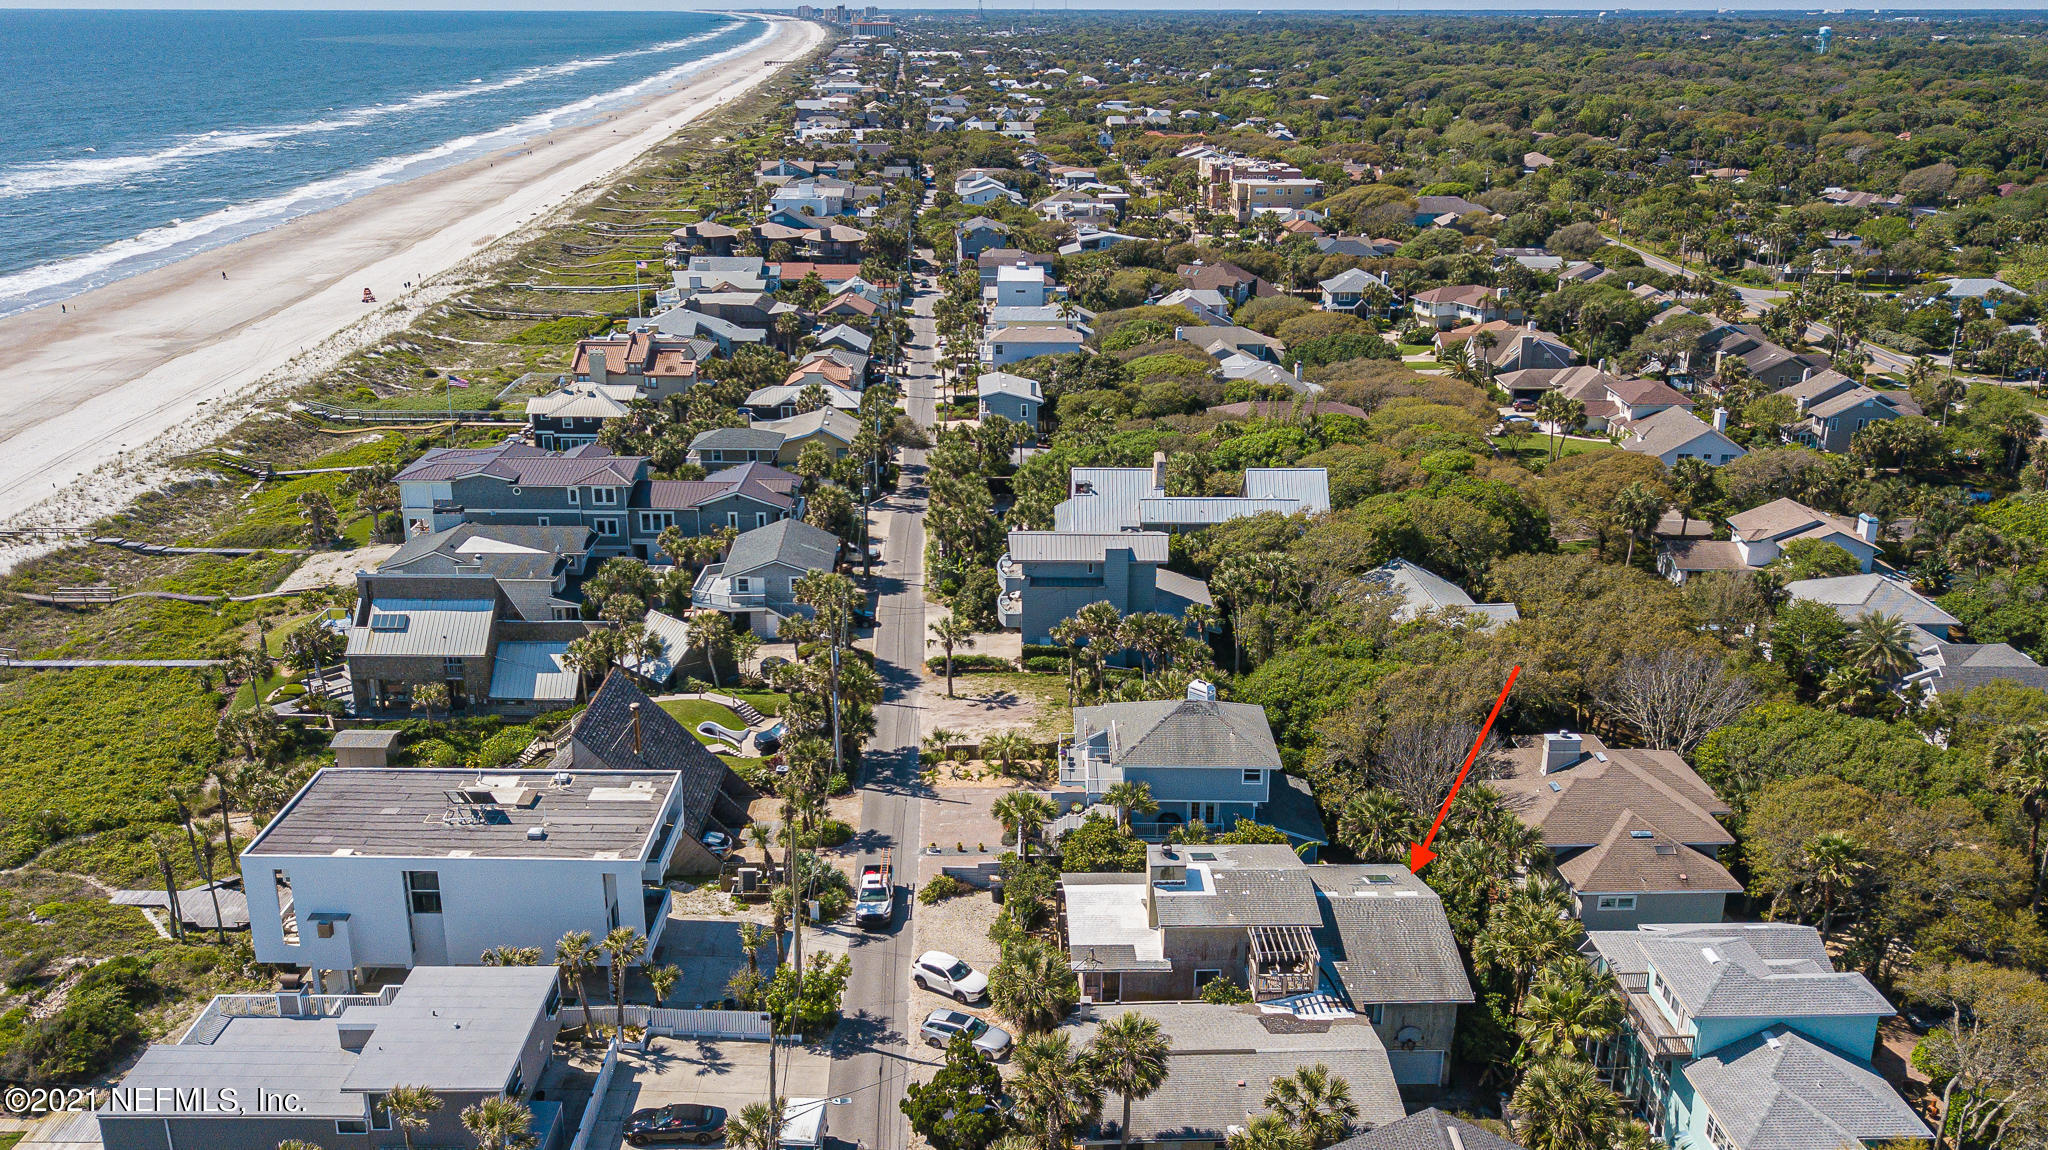 This amazing ocean view property sits near the highest point in Atlantic Beach. Walk steps out your door to the 19th St. beach access. Enjoy coffee and ocean sunrises from the balcony on the front of the house. It's a short bike ride to Beaches Town Center or Atlantic Beach Country Club.Property consists of two 3 bedroom, 2 bath homes, one 1 bedroom apartment, and an efficiency apartment. The largest unit has a two car garage. The other 3/2 has a 1 car garage. Live in one unit and keep the other 3 as rentals or build your dream home on this 100X100 lot with ocean views! All 4 units currently rented with leases that expire in June 2022. There is a 60 day notice for tenants to exit.  See documents for list of appliances and appraisal.